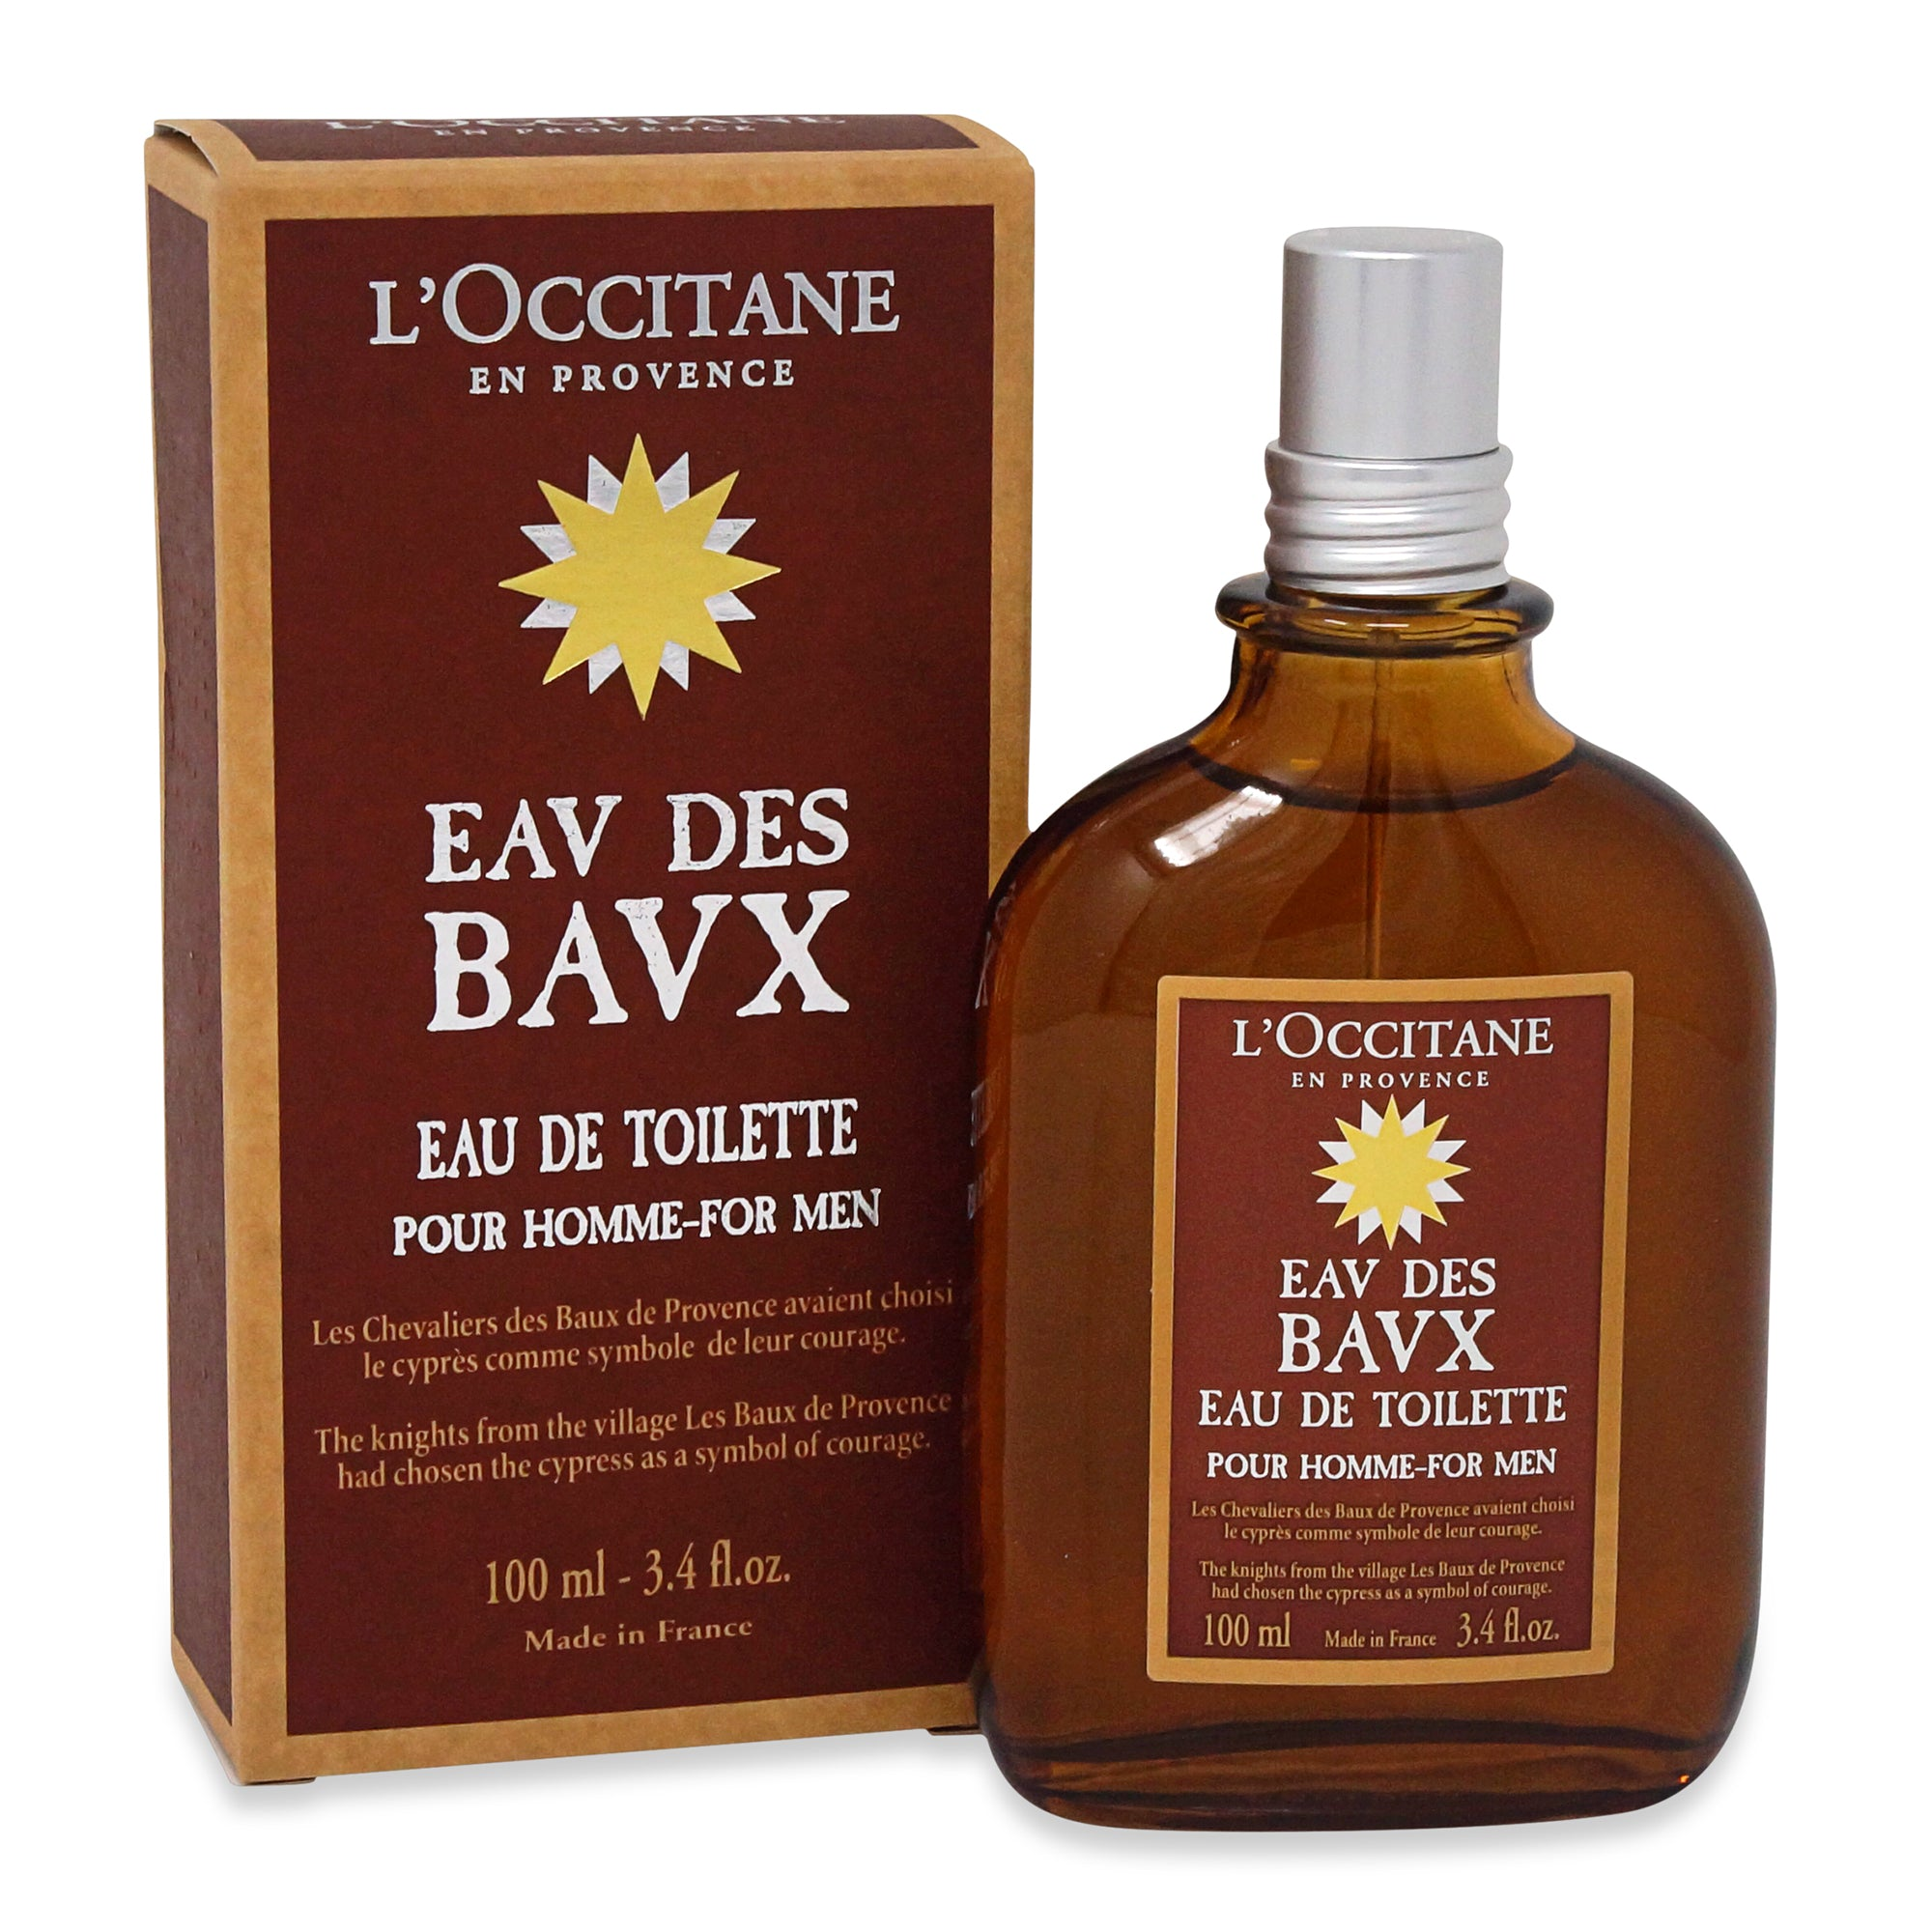 LOCCITANE ~ EDT EAV DES BAVX FOR MEN ~ 3.4OZ